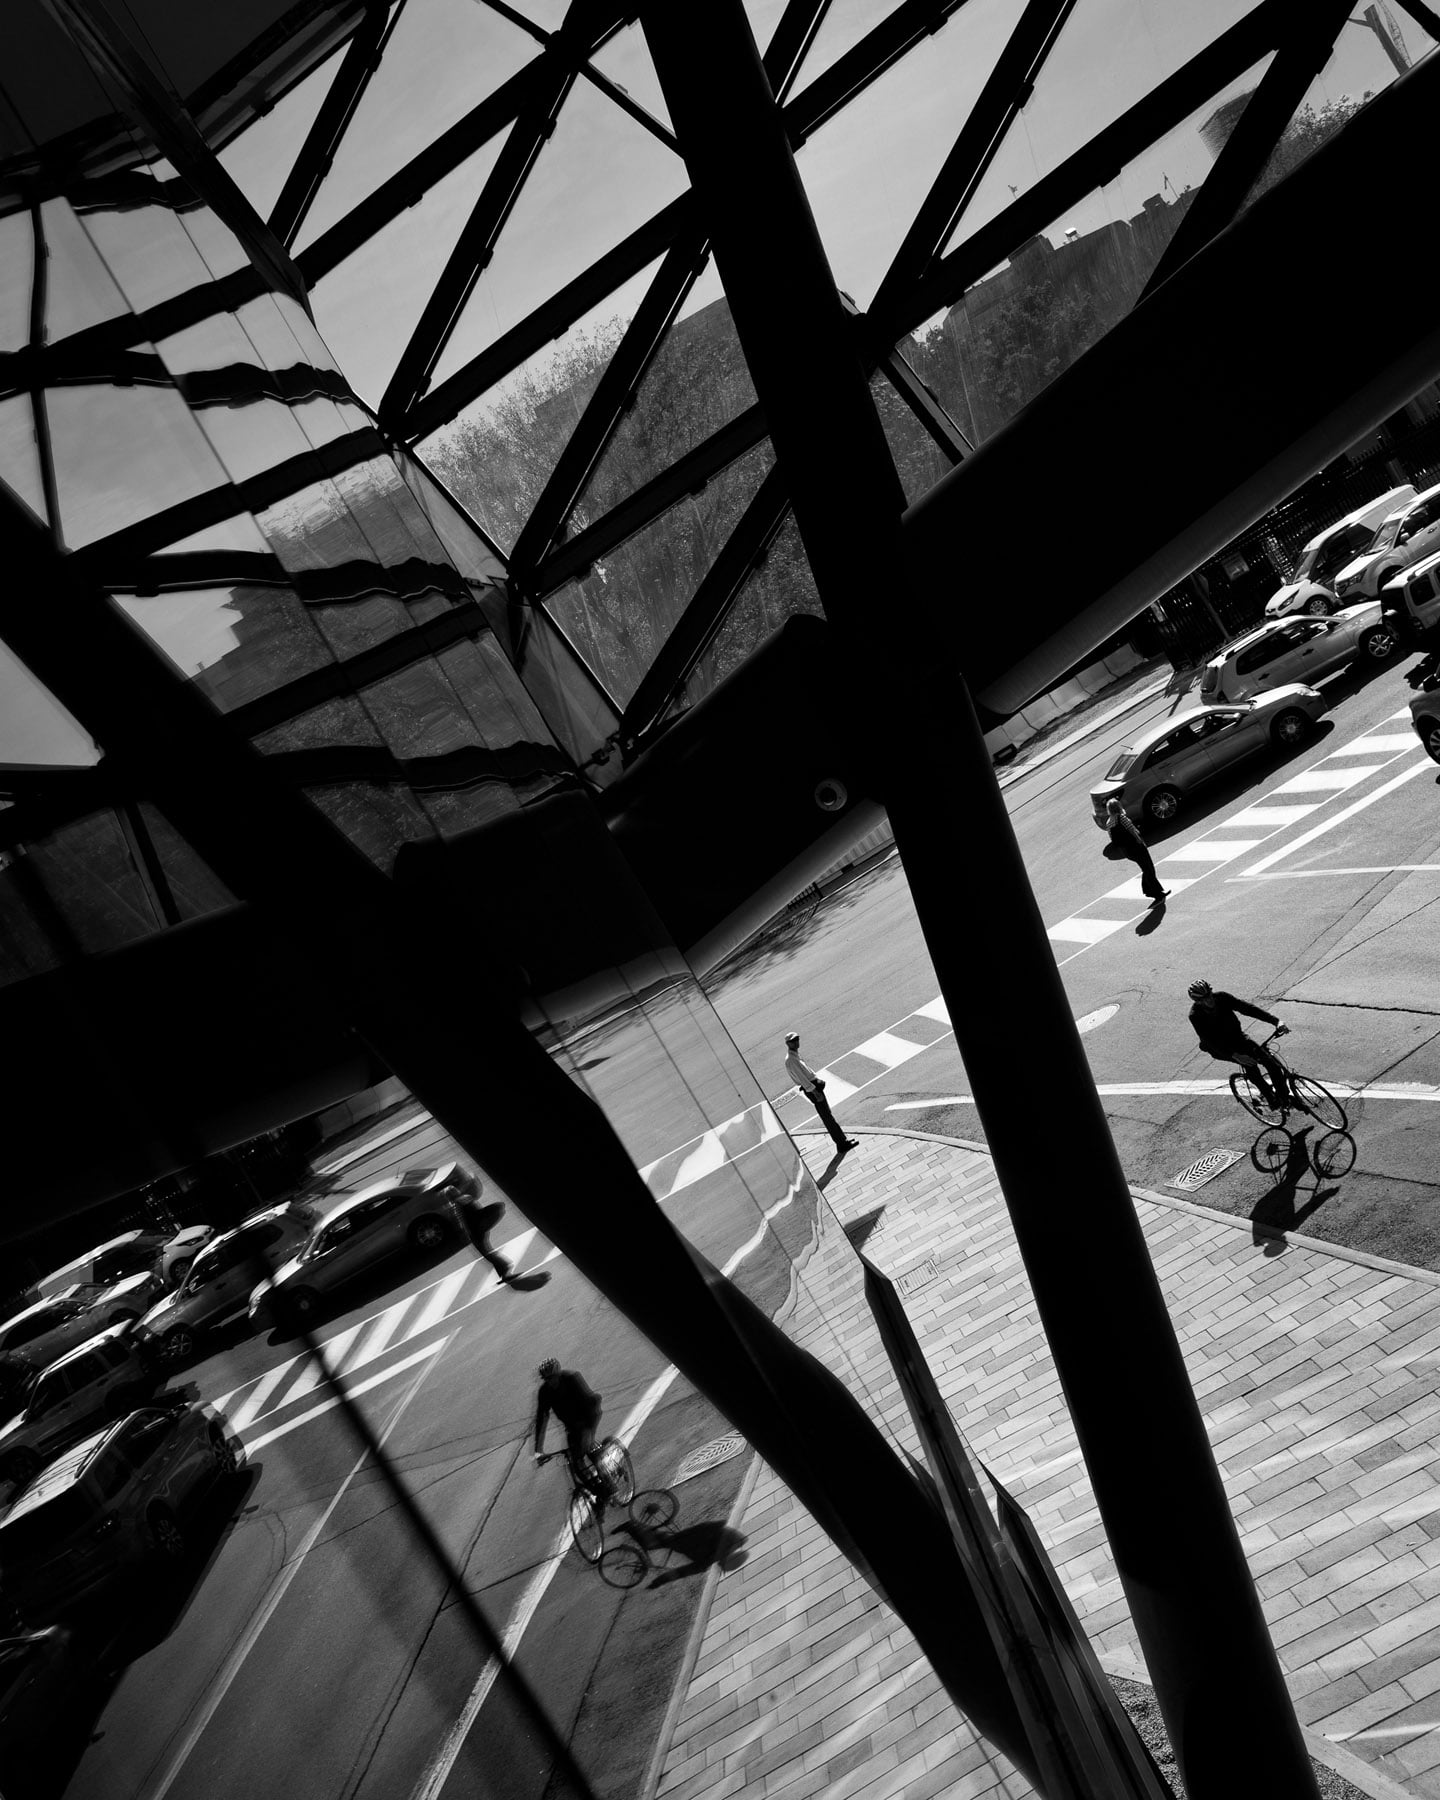 Street photography of an urban setting, showcasing person on a bicycle and their reflection on the side of a building.